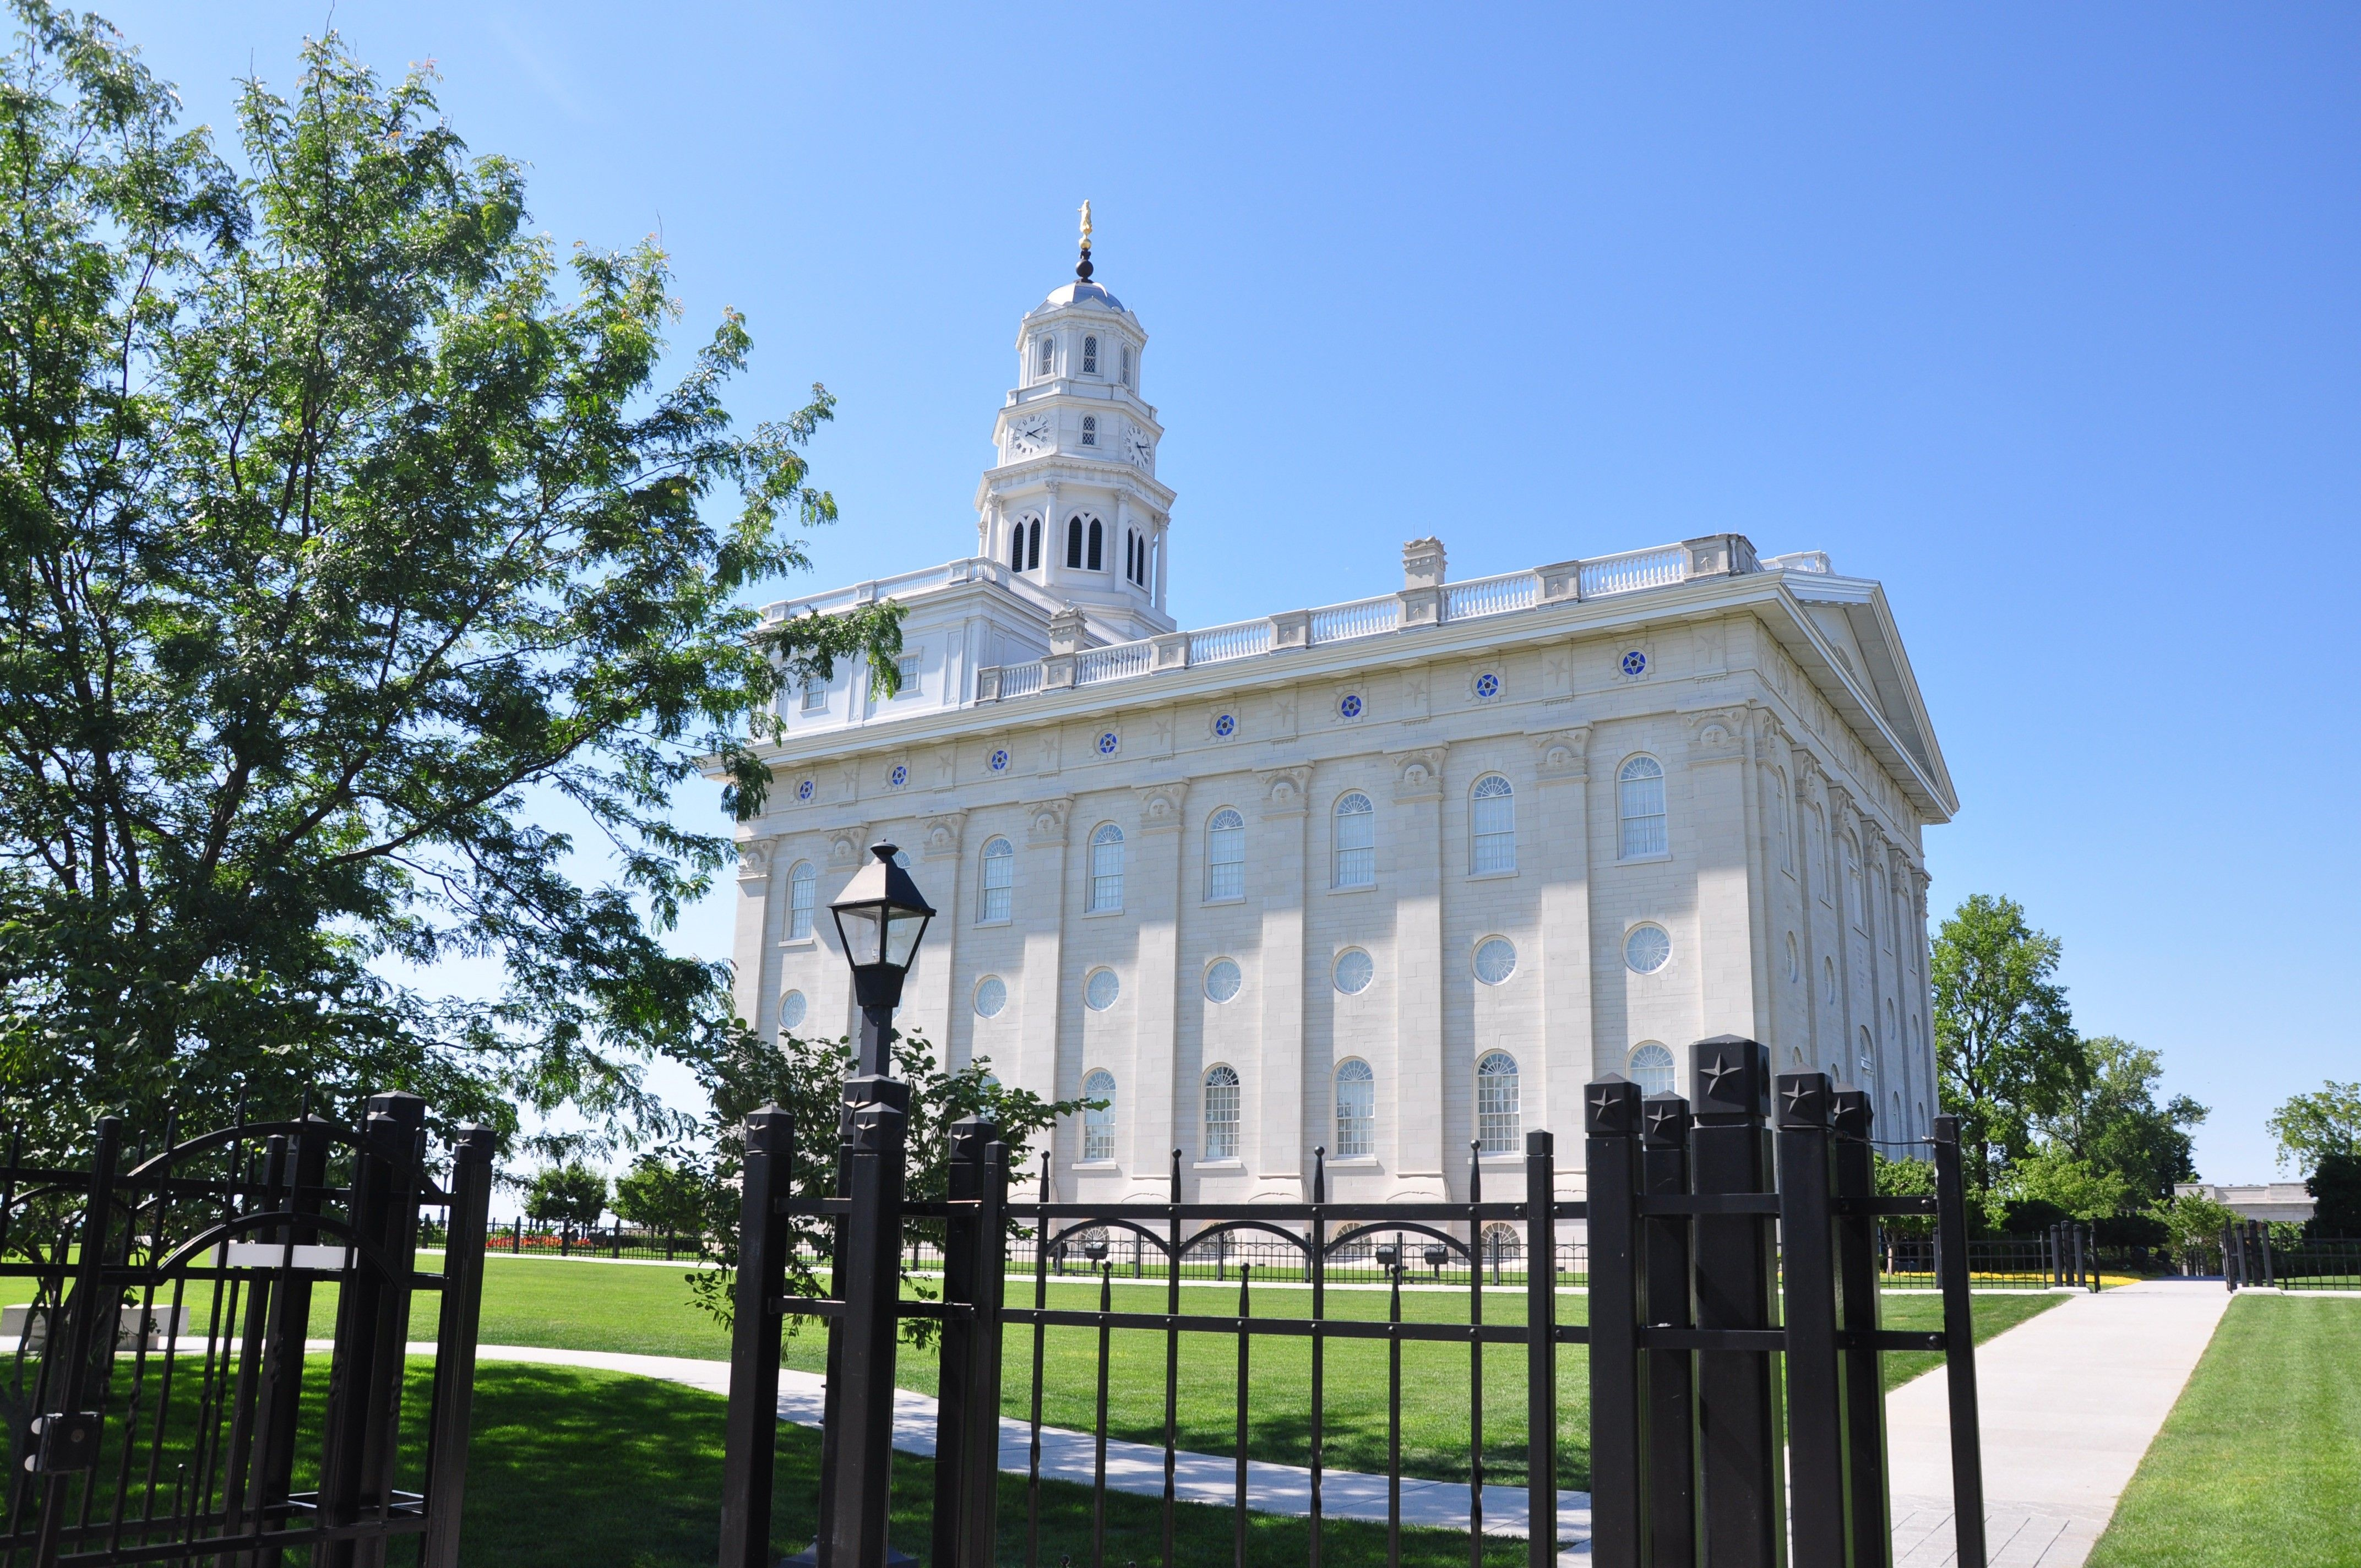 The Nauvoo Illinois Temple on a sunny day.